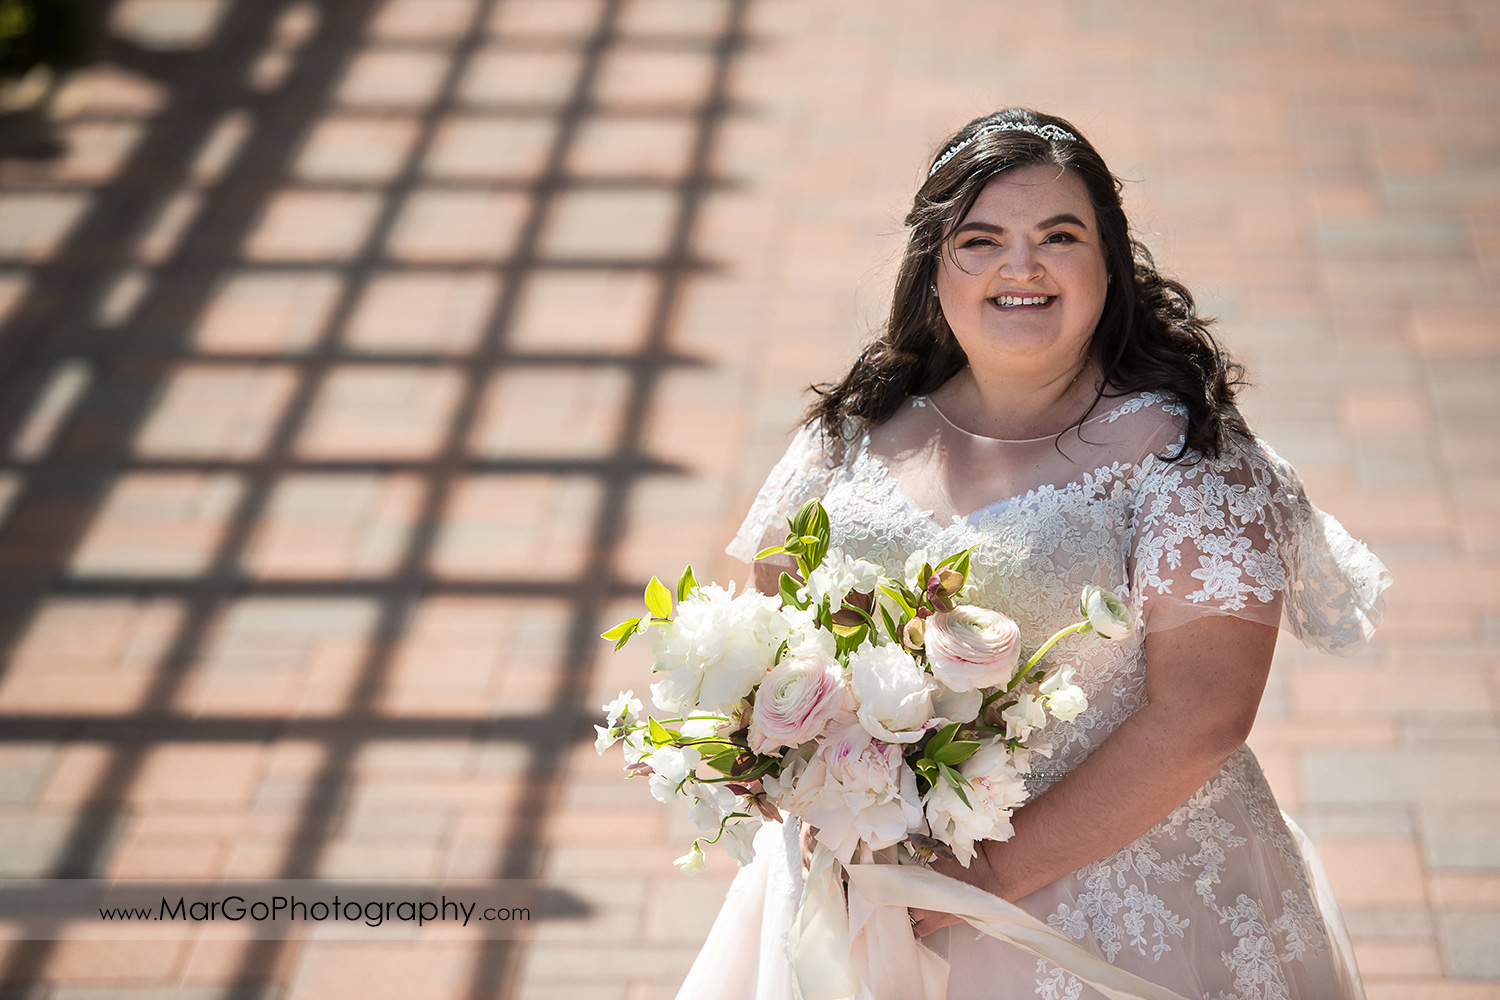 portrait of the bride with white flower bouquet at Livermore Garre Vineyard and Winery